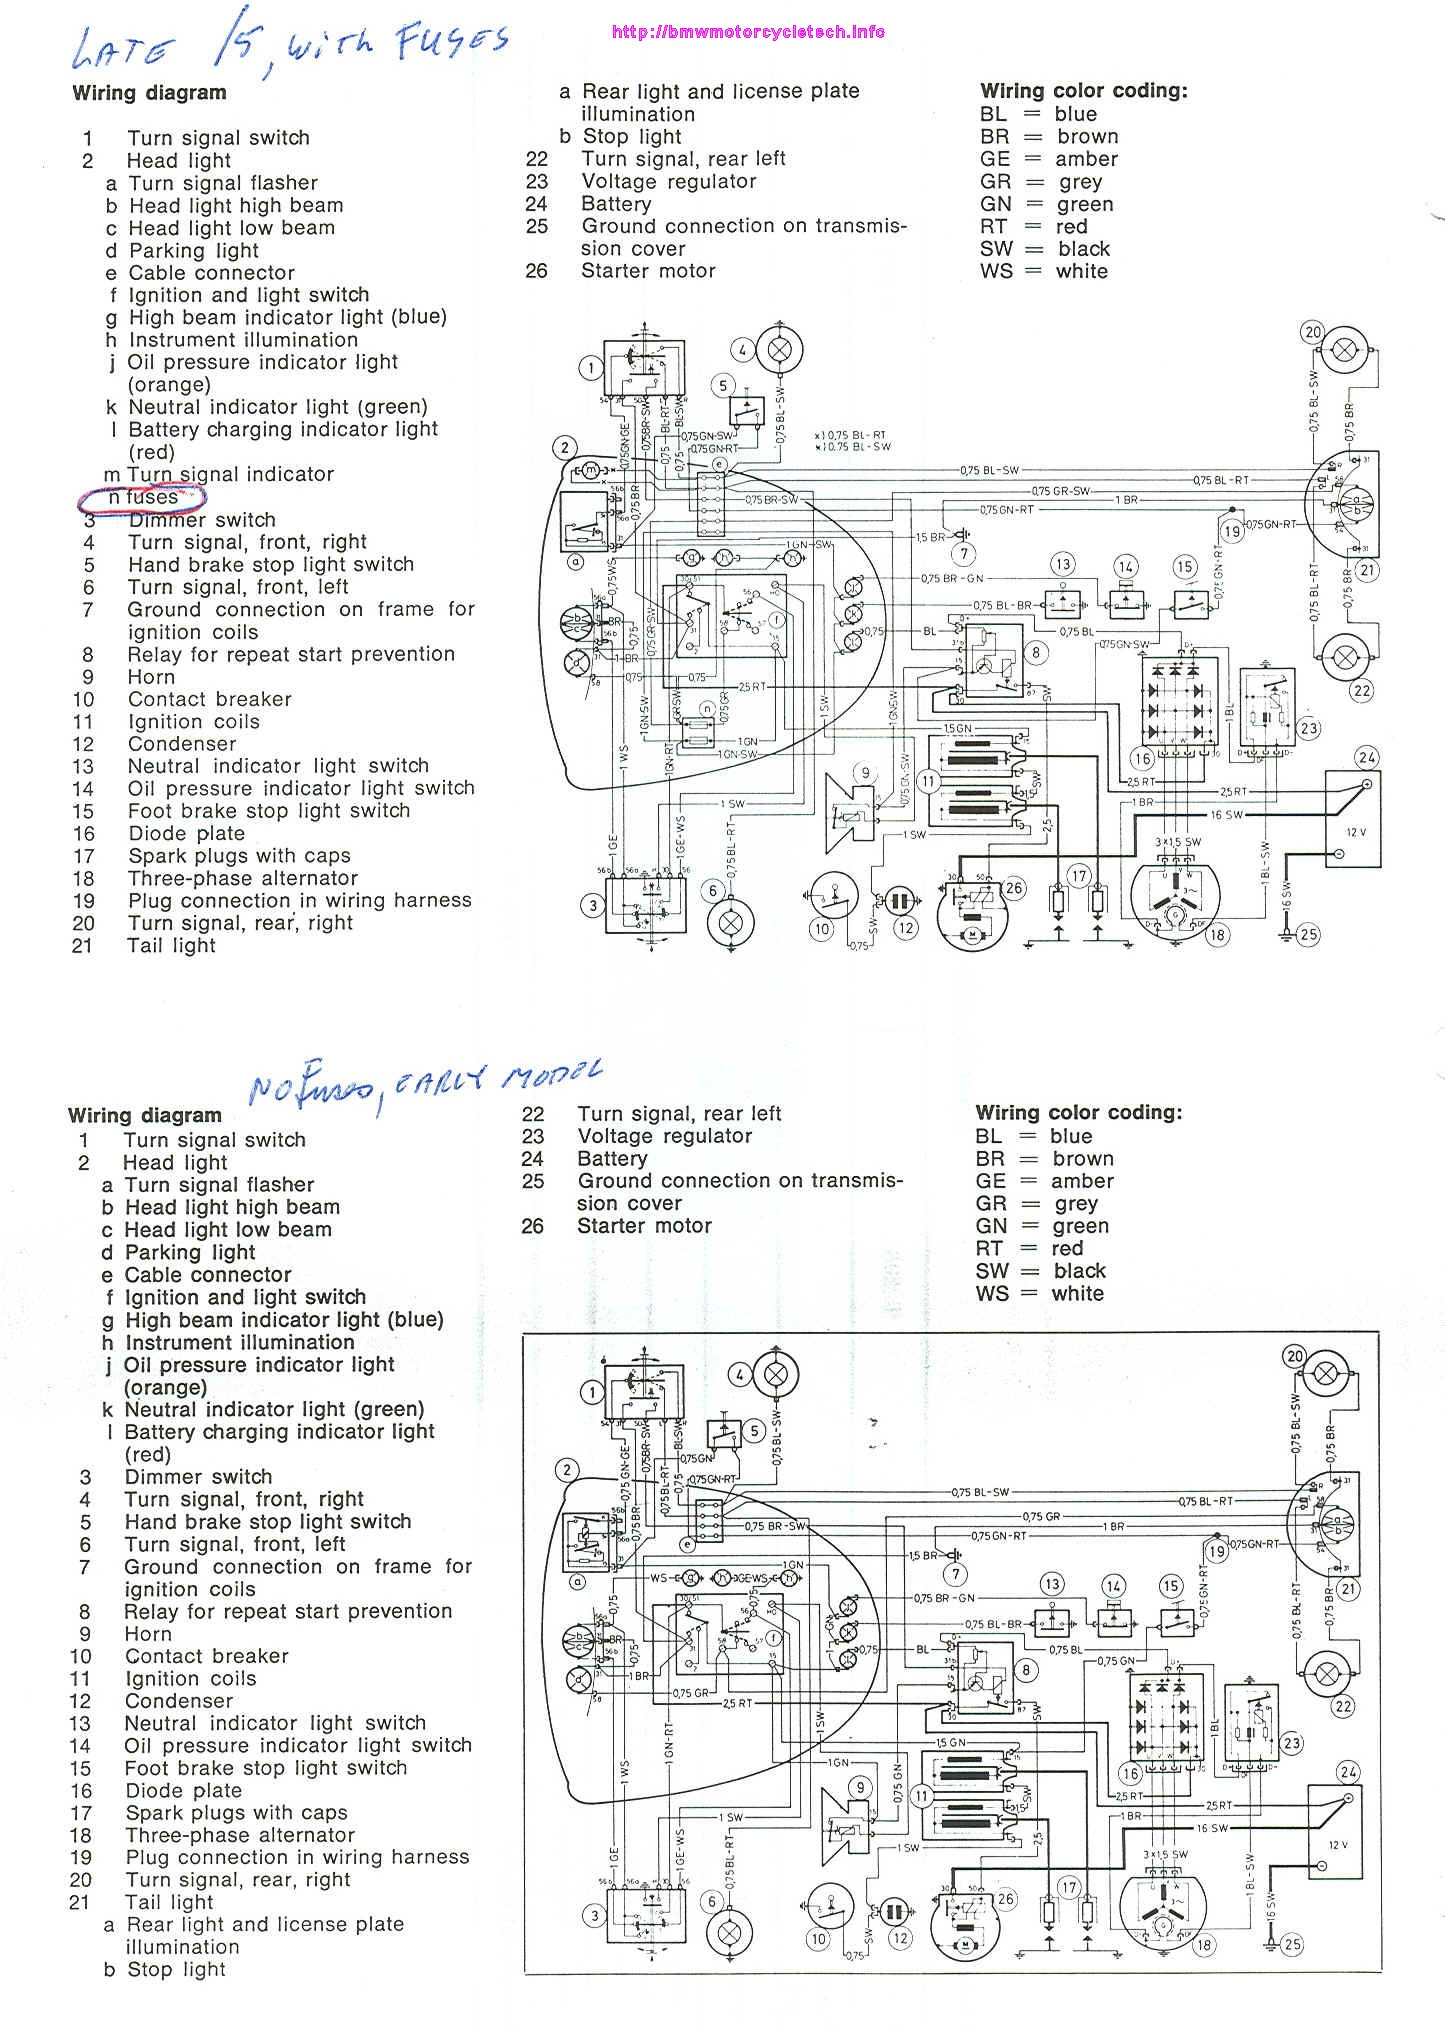 Snowbum bmw motorcycle technical articles maintenance snobum schematic diagrams for both early and late 5 early model had no fuses set your browser to expand the image as needed it will be cleanly displayed swarovskicordoba Image collections